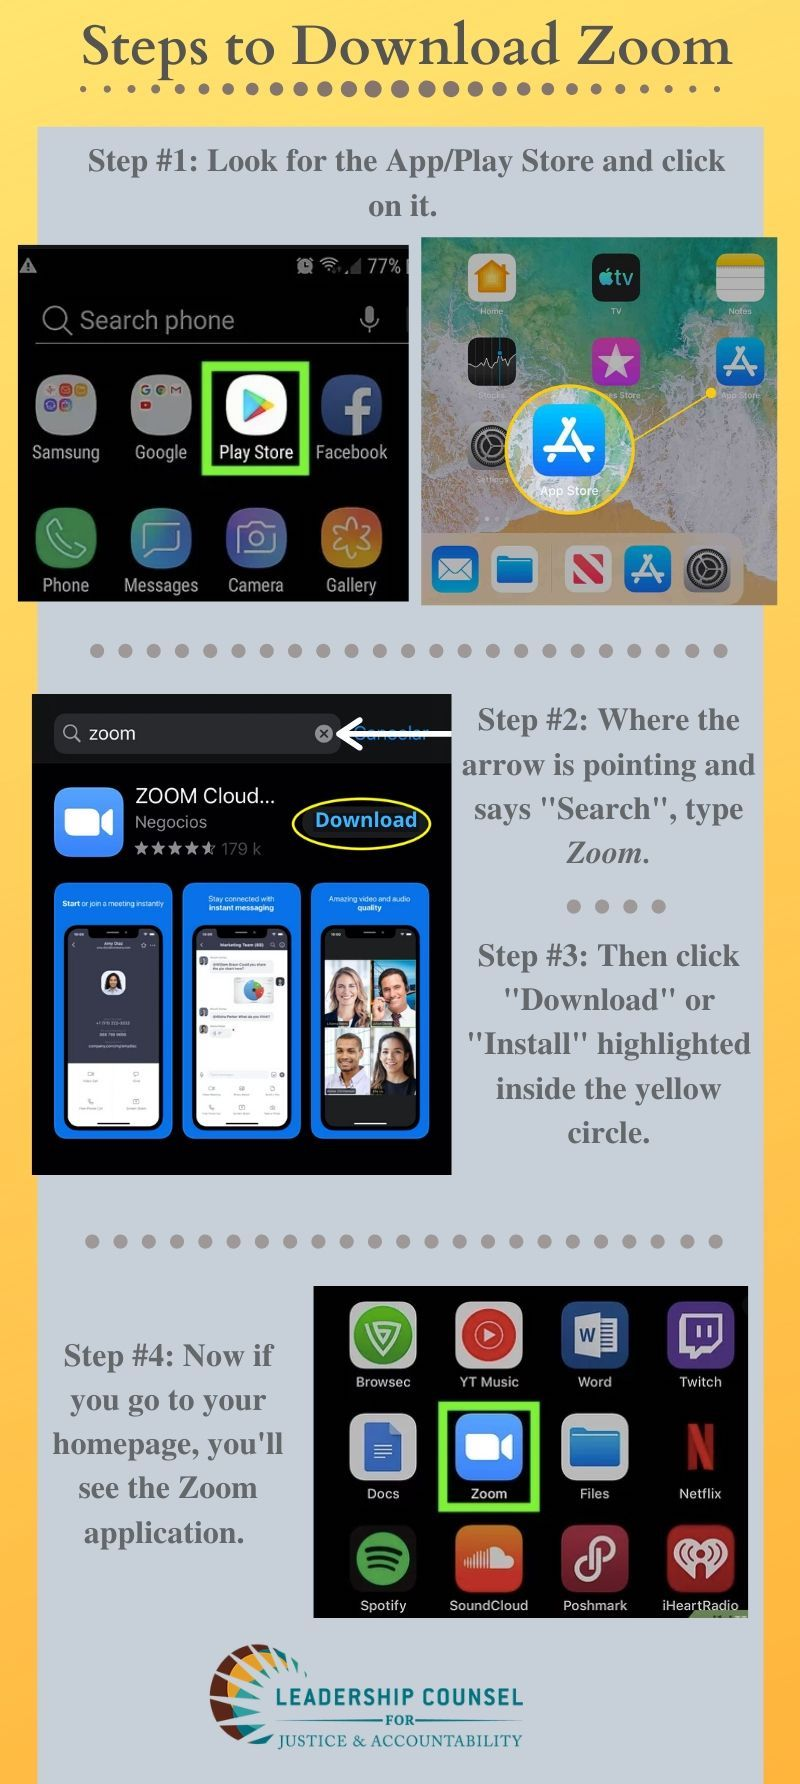 How to download Zoom